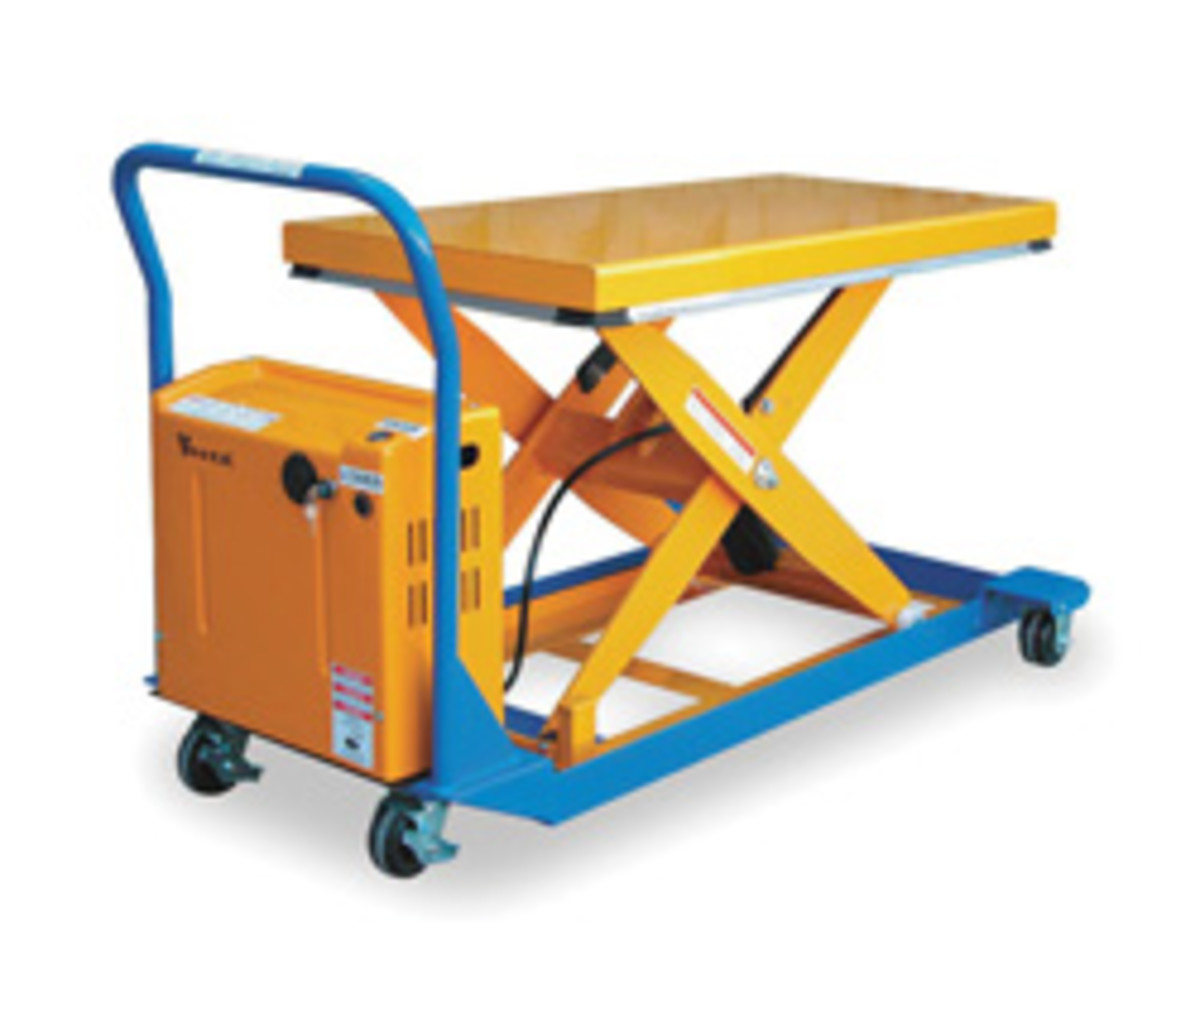 The Vestil lift, model 3EB99, available from Grainger.